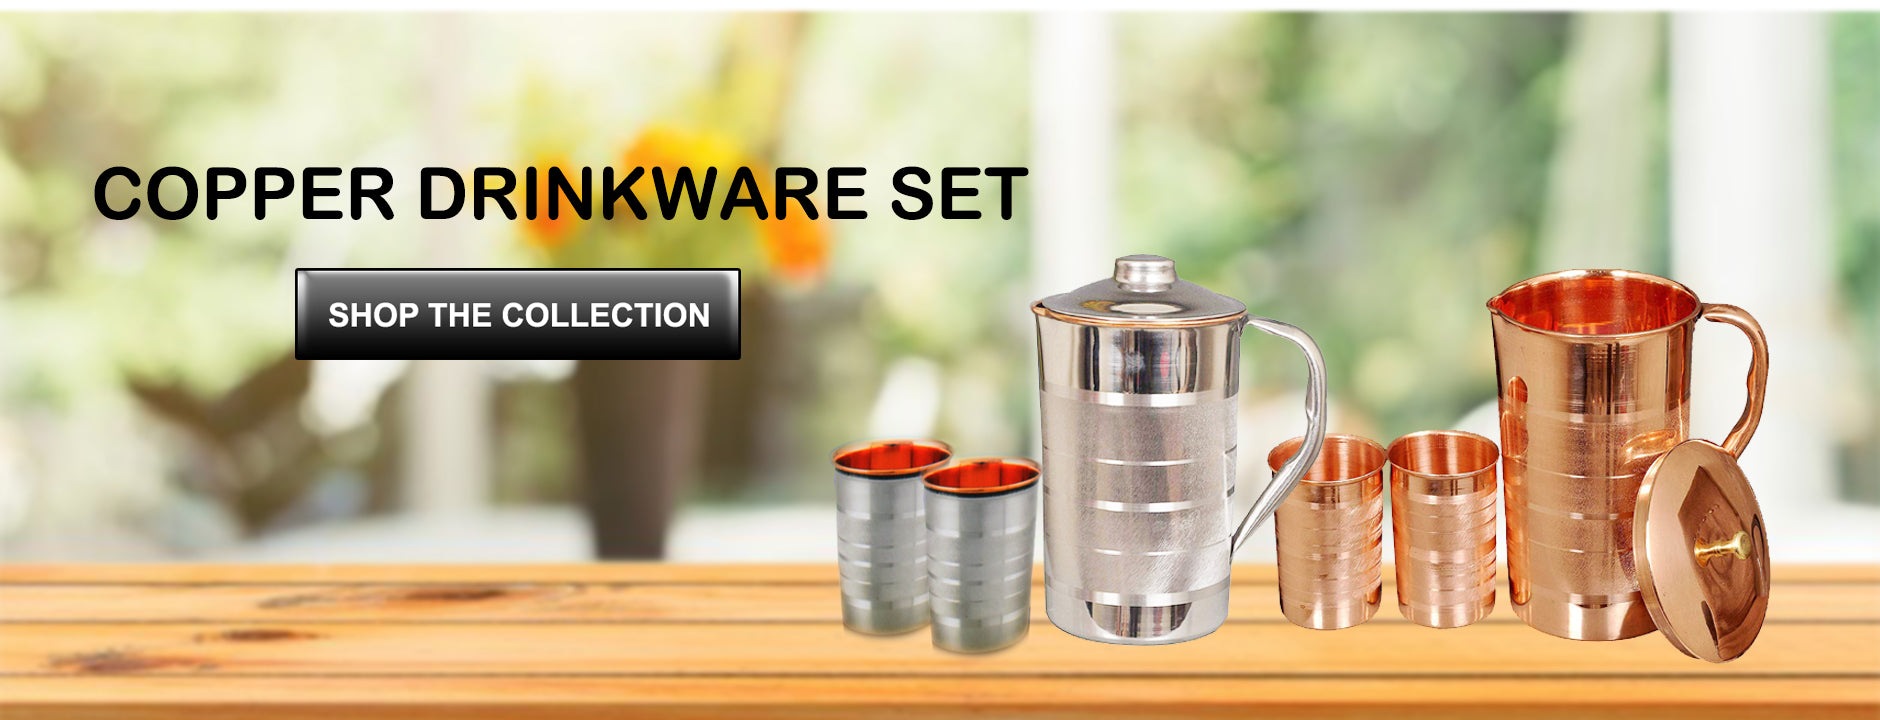 Buy Online Pure Copper water Jug set with 2 glasses at Nutristar. Make habit of drinking water stored in copper jug. Buy best price online copper jug with two glasses at reasonable price.